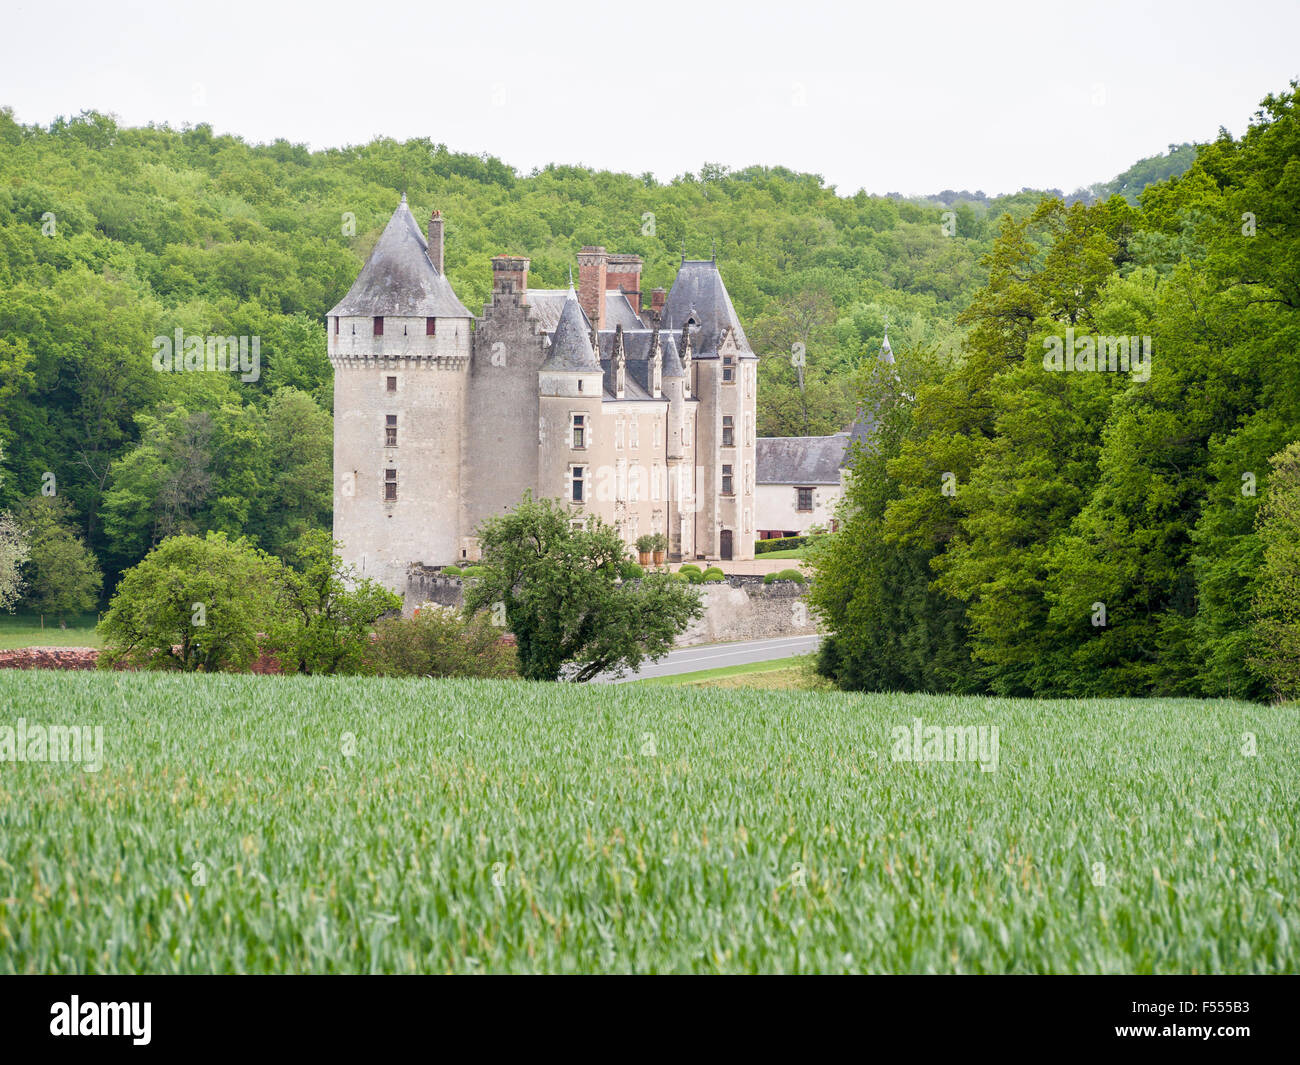 Chateau below a Wheat field. A green crop of wheat frames a view of Chateau de Montpoupon in the Loire countryside. - Stock Image